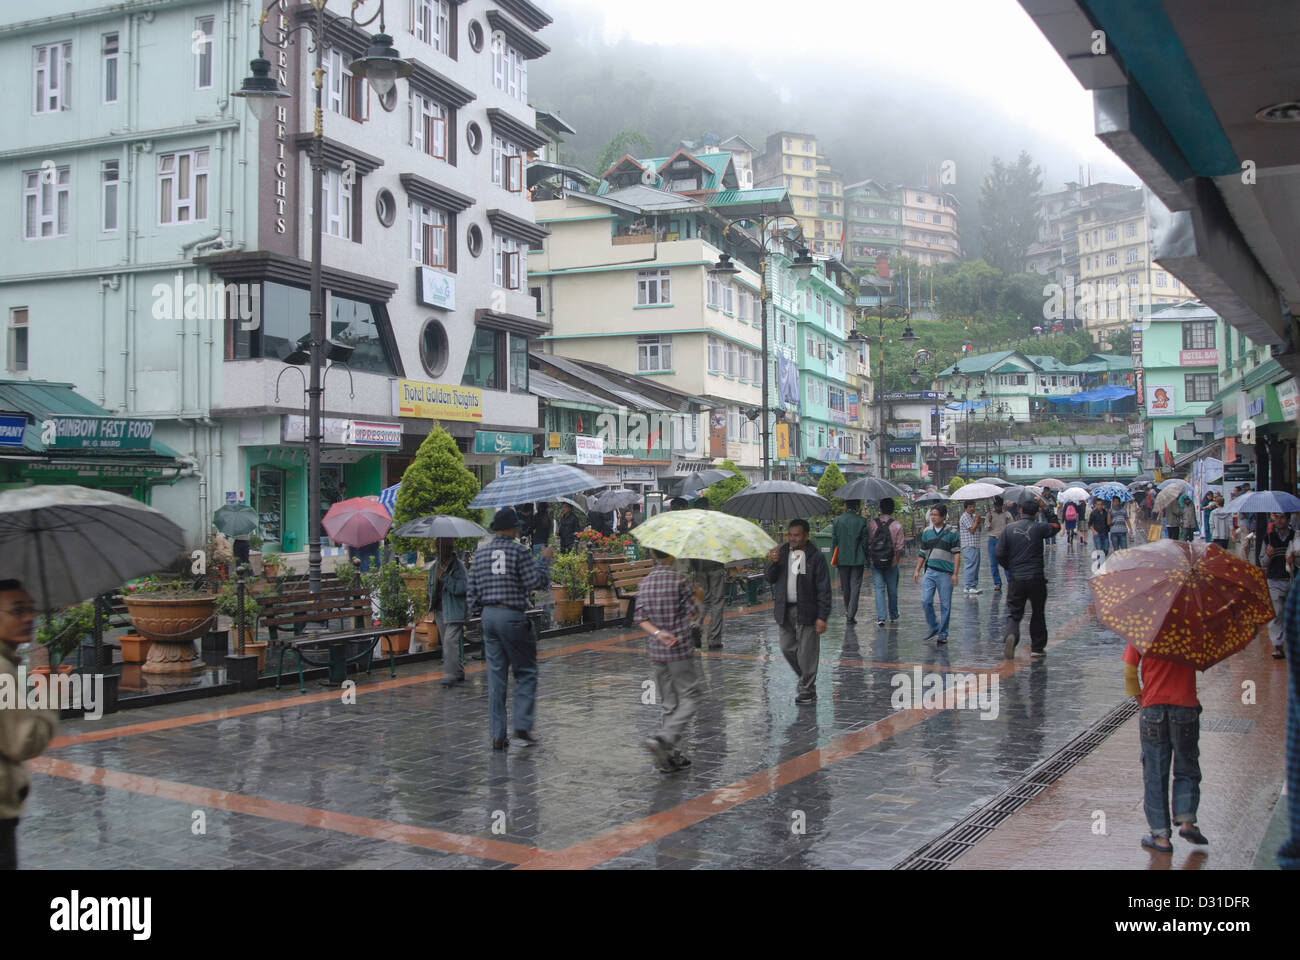 General-View of the Mall road, main shopping area in Gangtok (Sikkim), during rains. - Stock Image